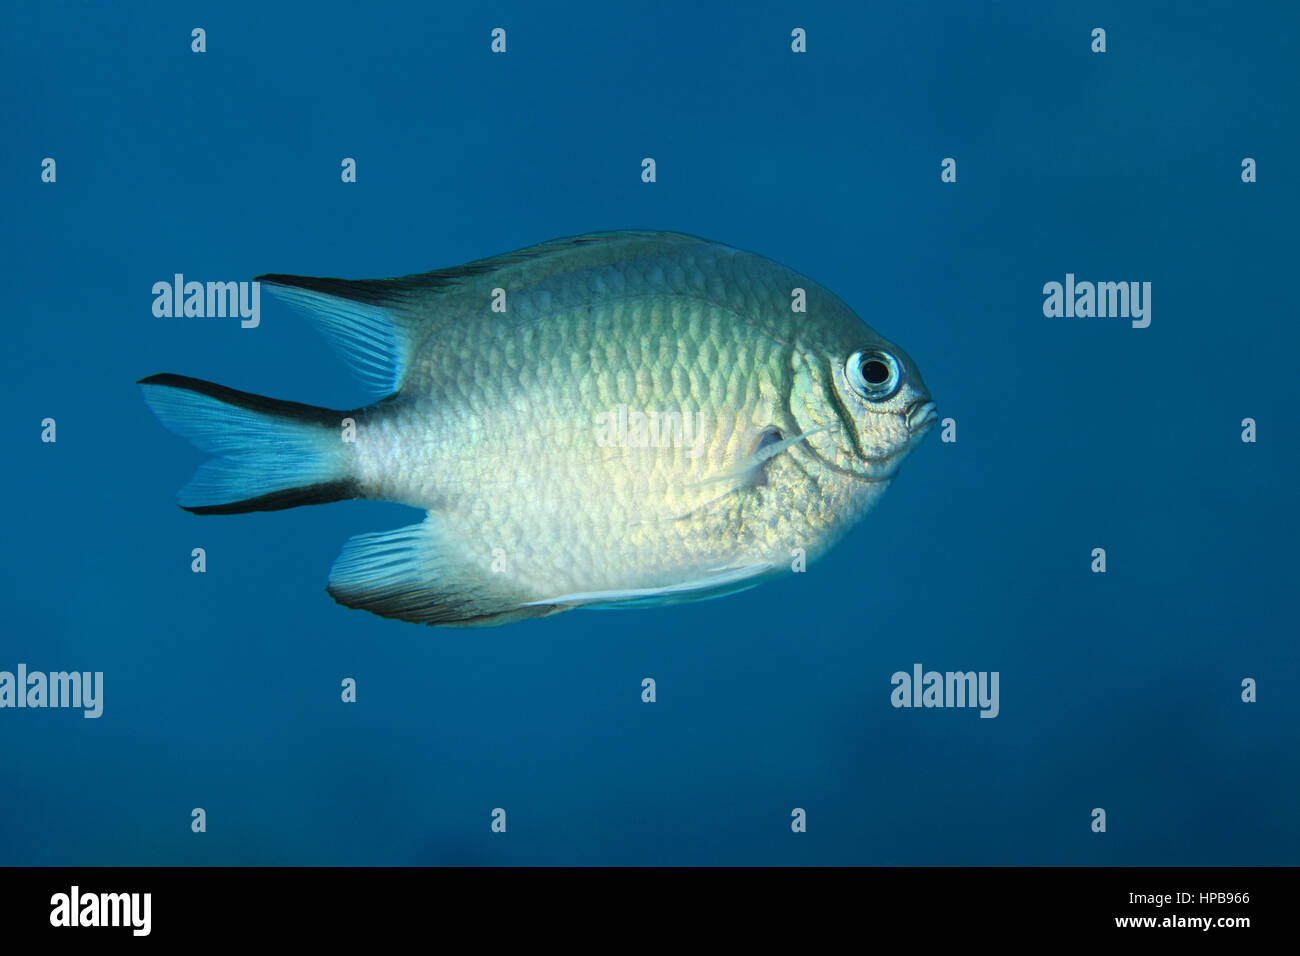 Whitebelly damsel fish (Amblyglyphidodon leucogaster) underwater in the Red Sea Stock Photo